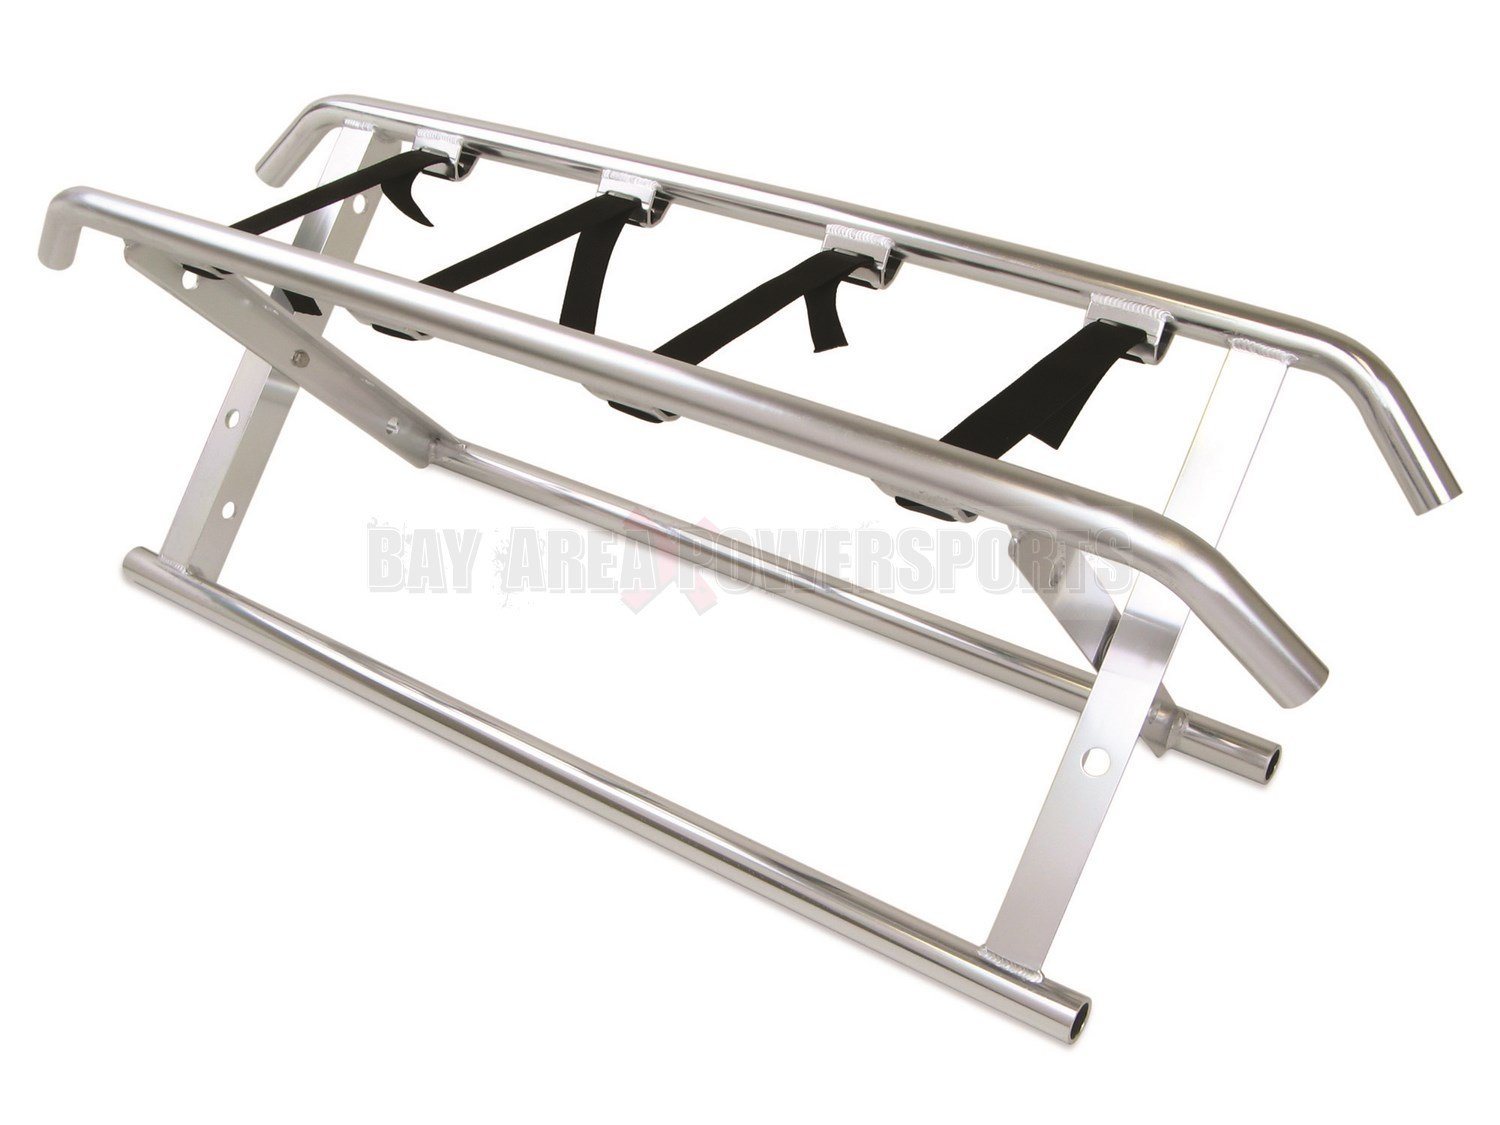 Motorsport Products PWC Shoreline Scissor Stand/Runabout 79-2001 by Motorsport Products (Image #1)